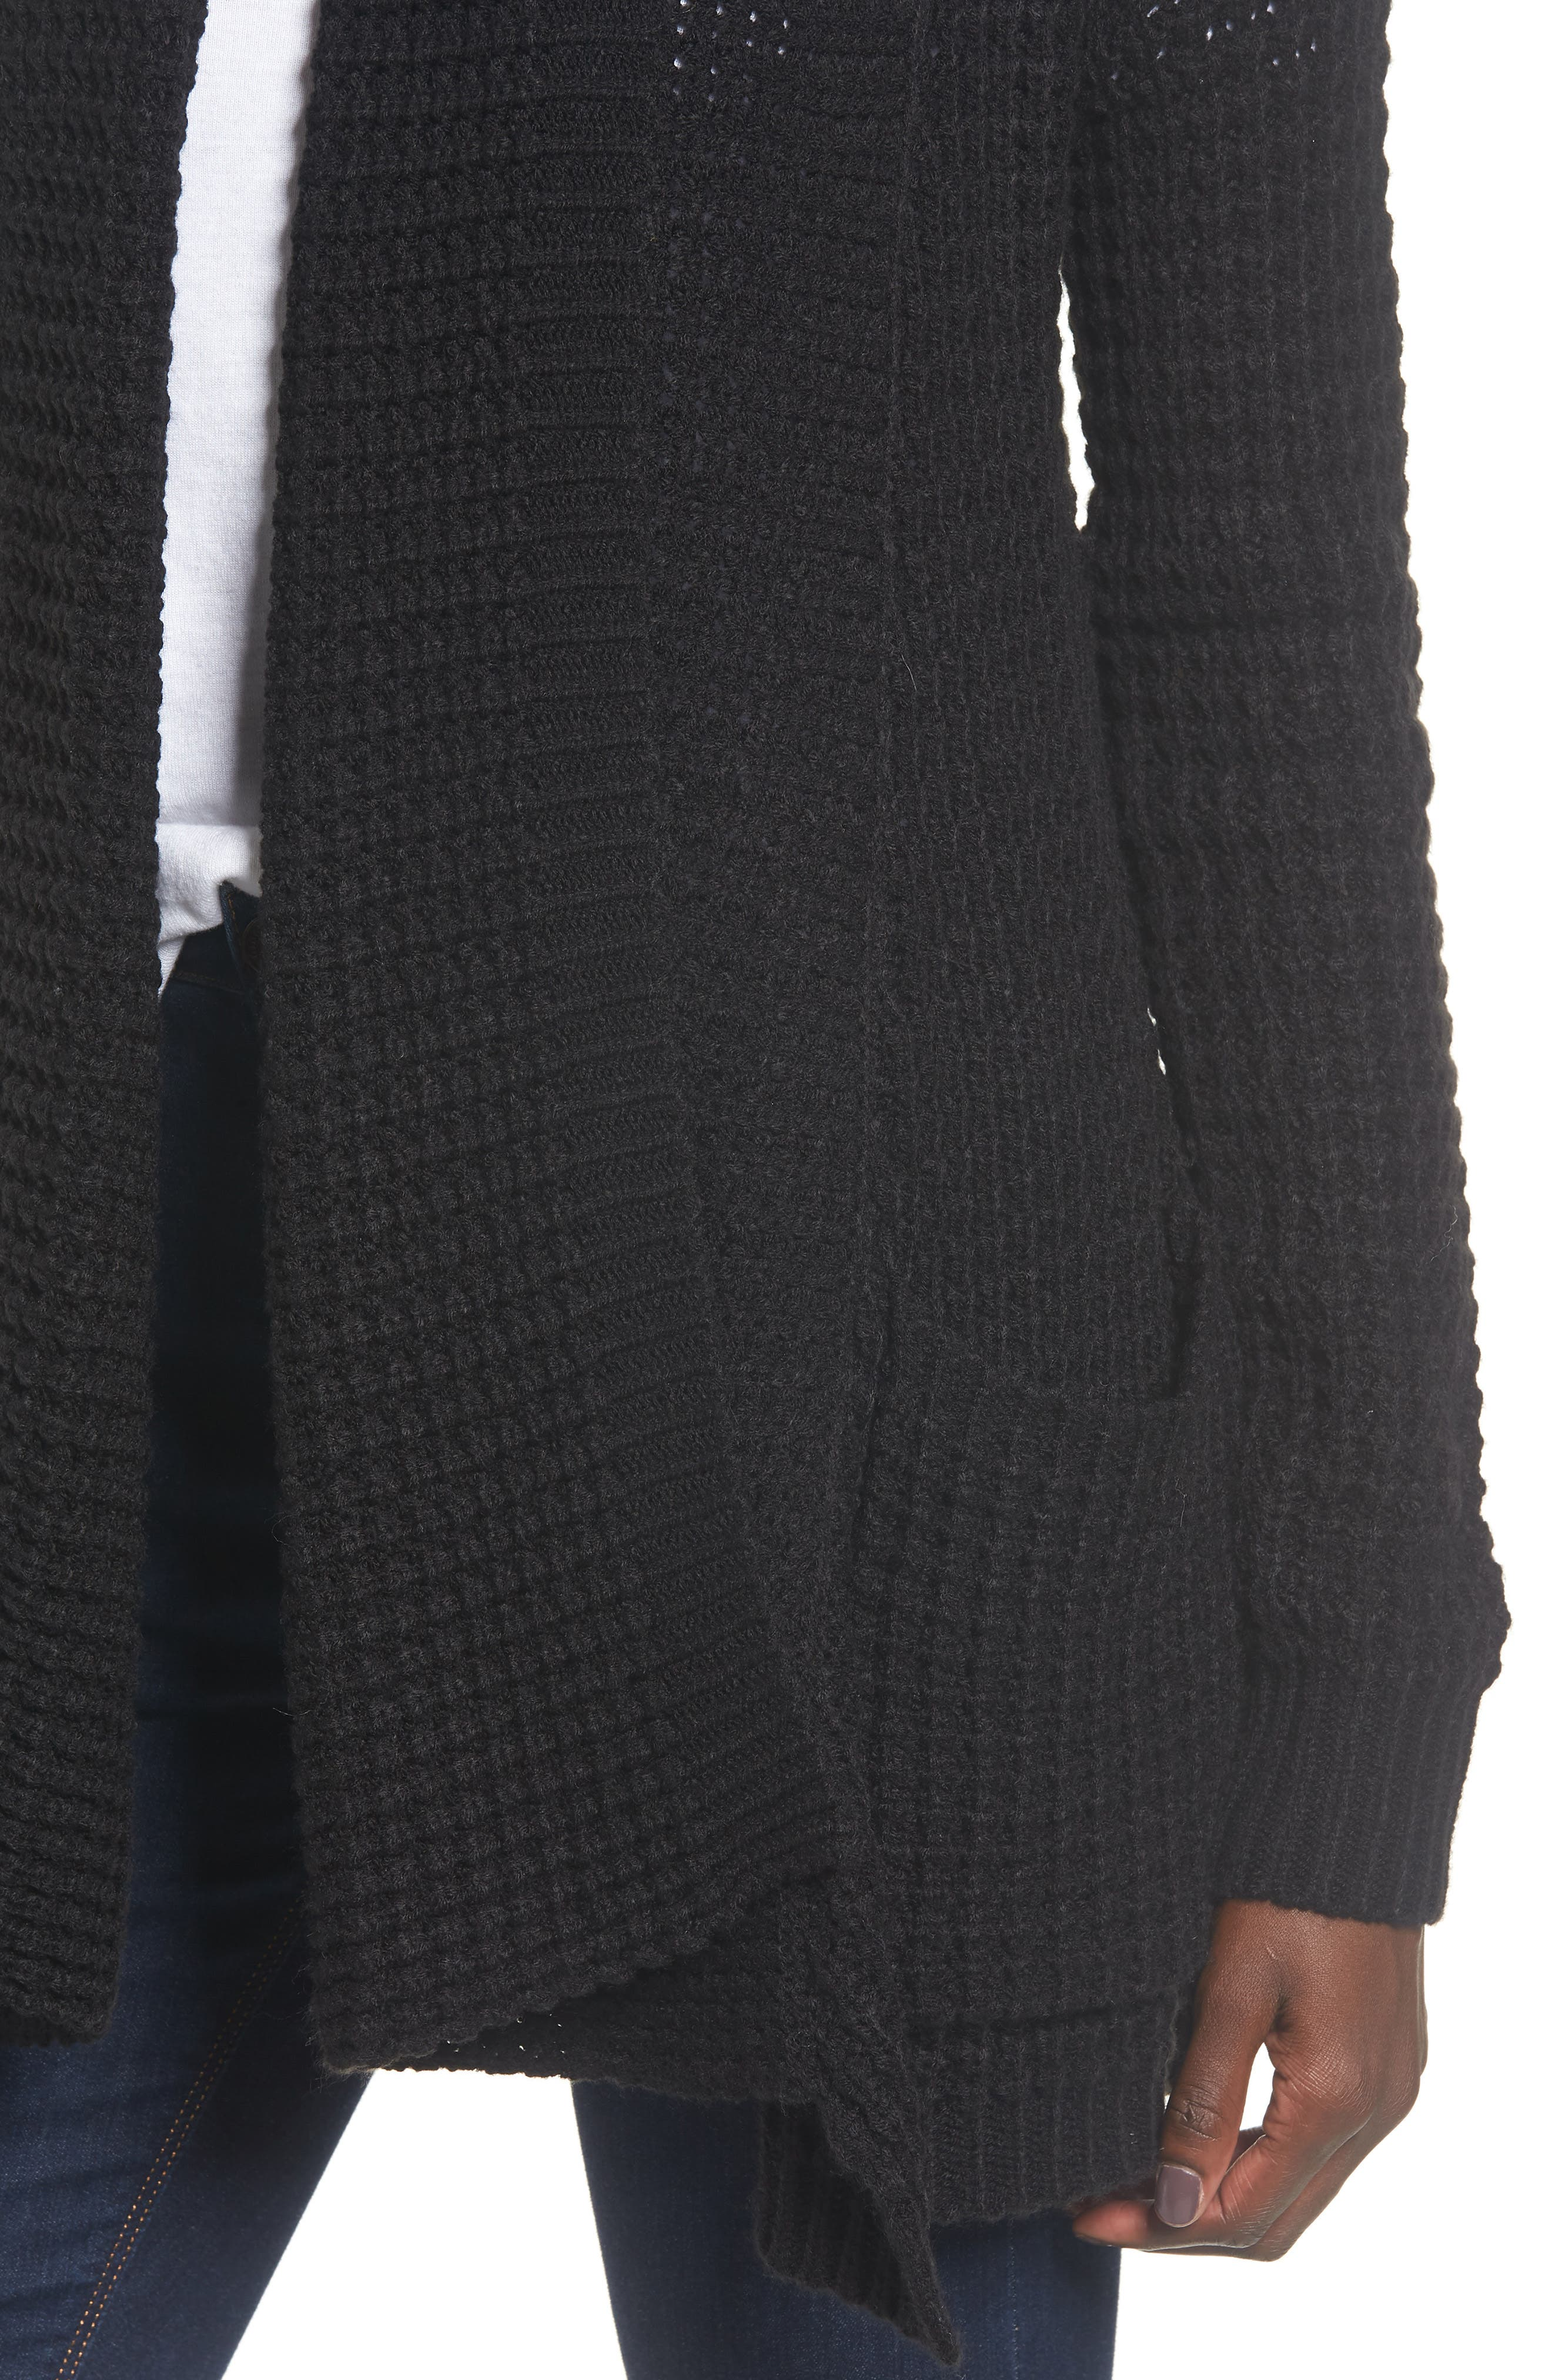 Shambala Knit Cardigan,                             Alternate thumbnail 4, color,                             BLACK